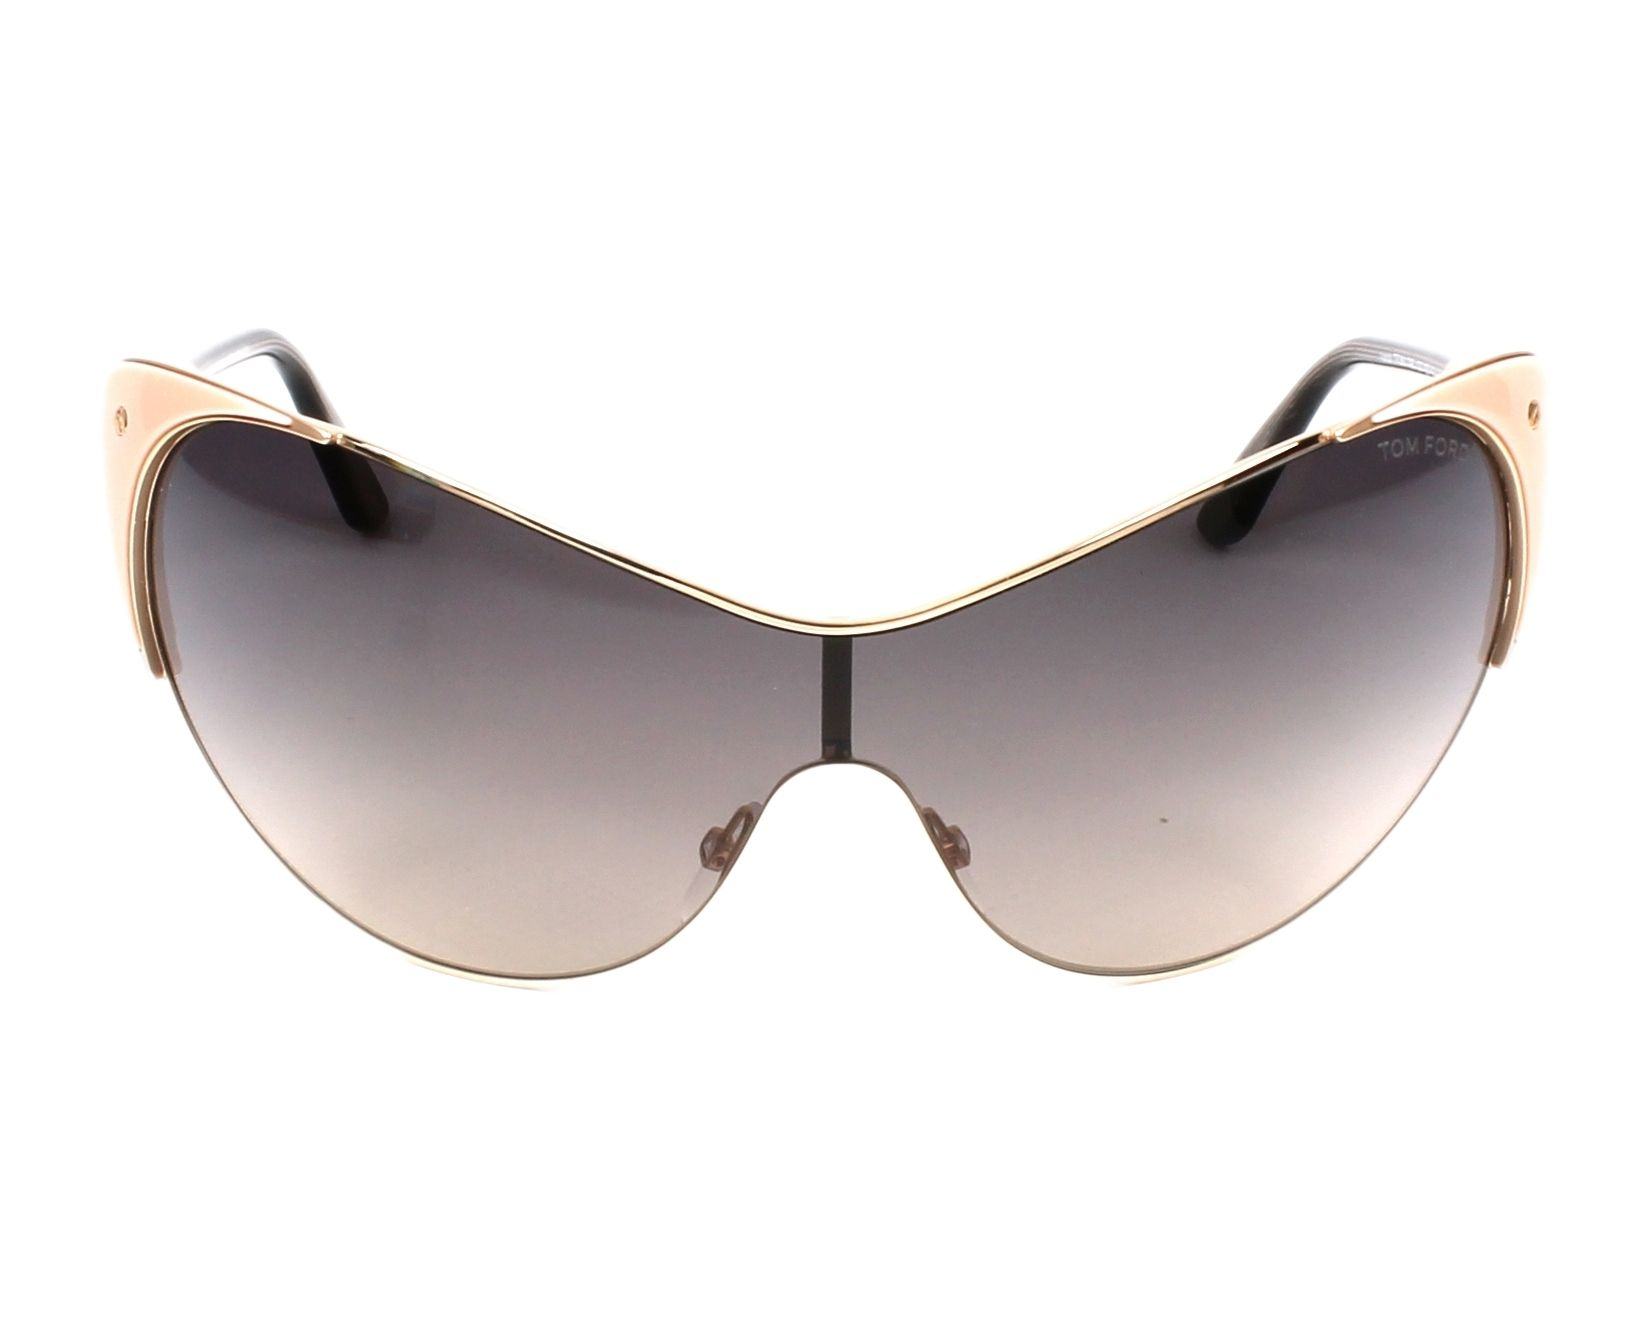 c6ff5788c066 Sunglasses Tom Ford TF-0364 74B - Gold Rosa front view